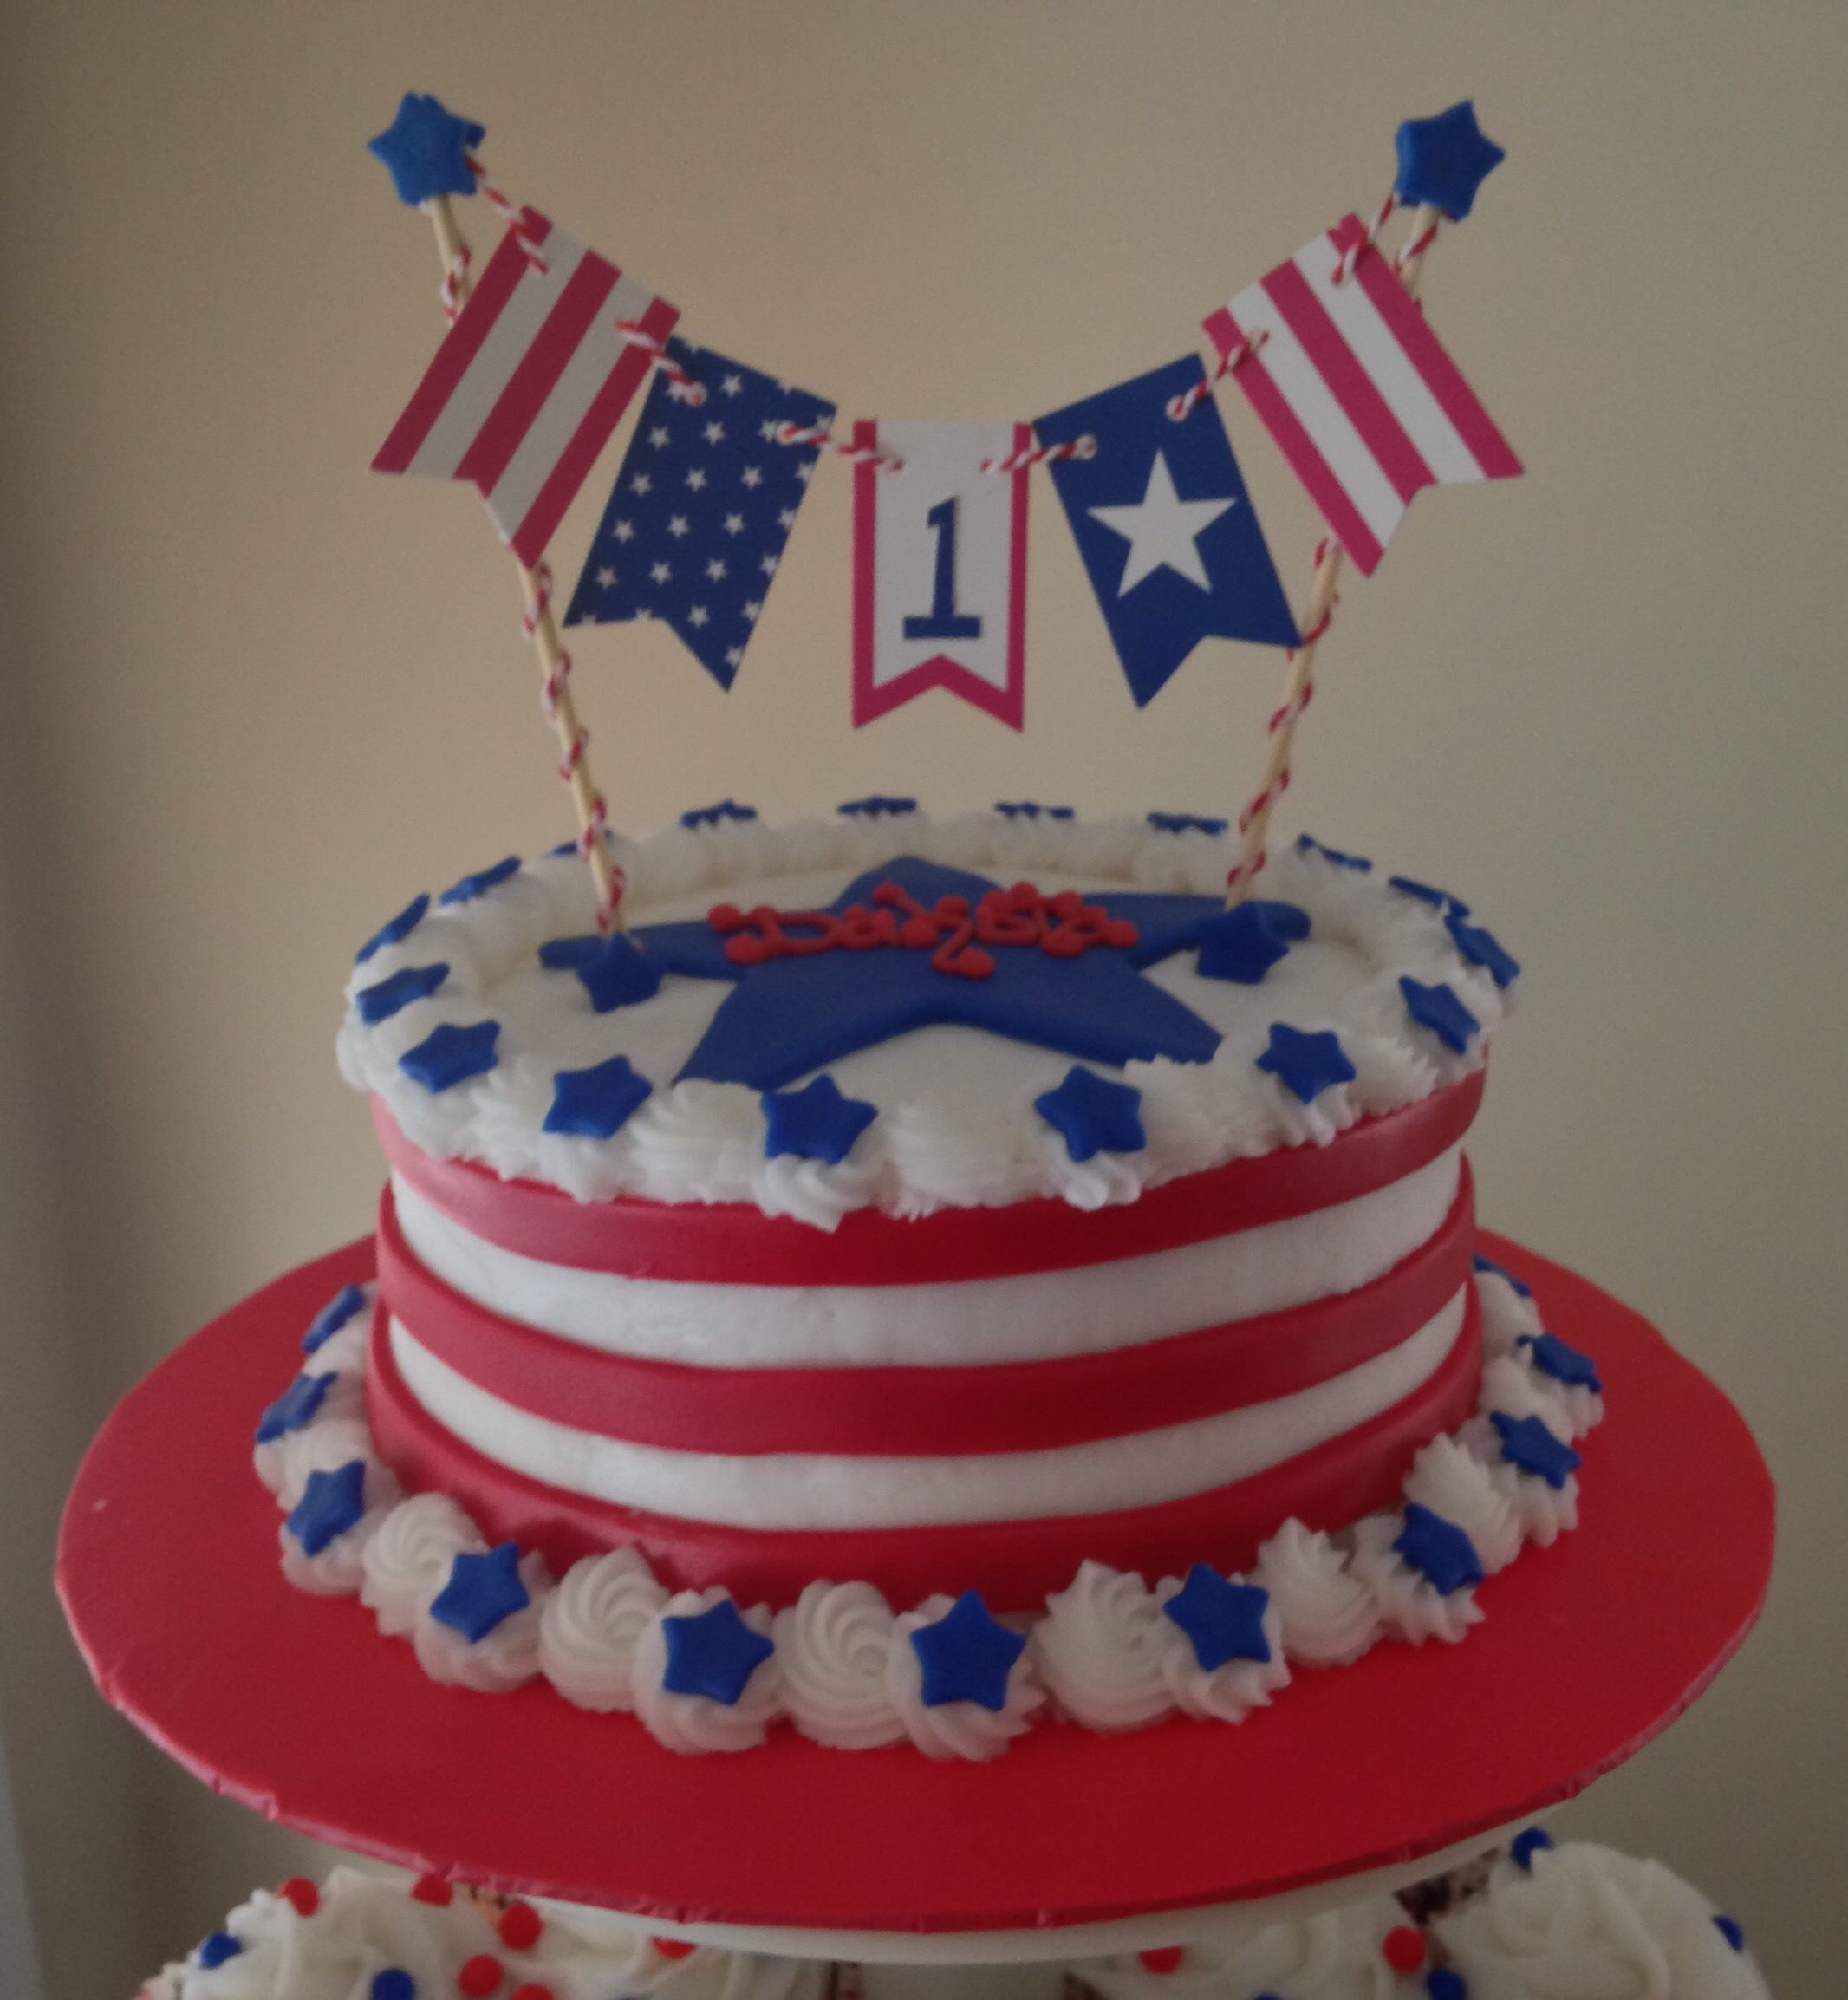 4Th Of July Birthday Cakes 1st 4th Of July Birthday Cake My Cakes Pinterest July Birthday